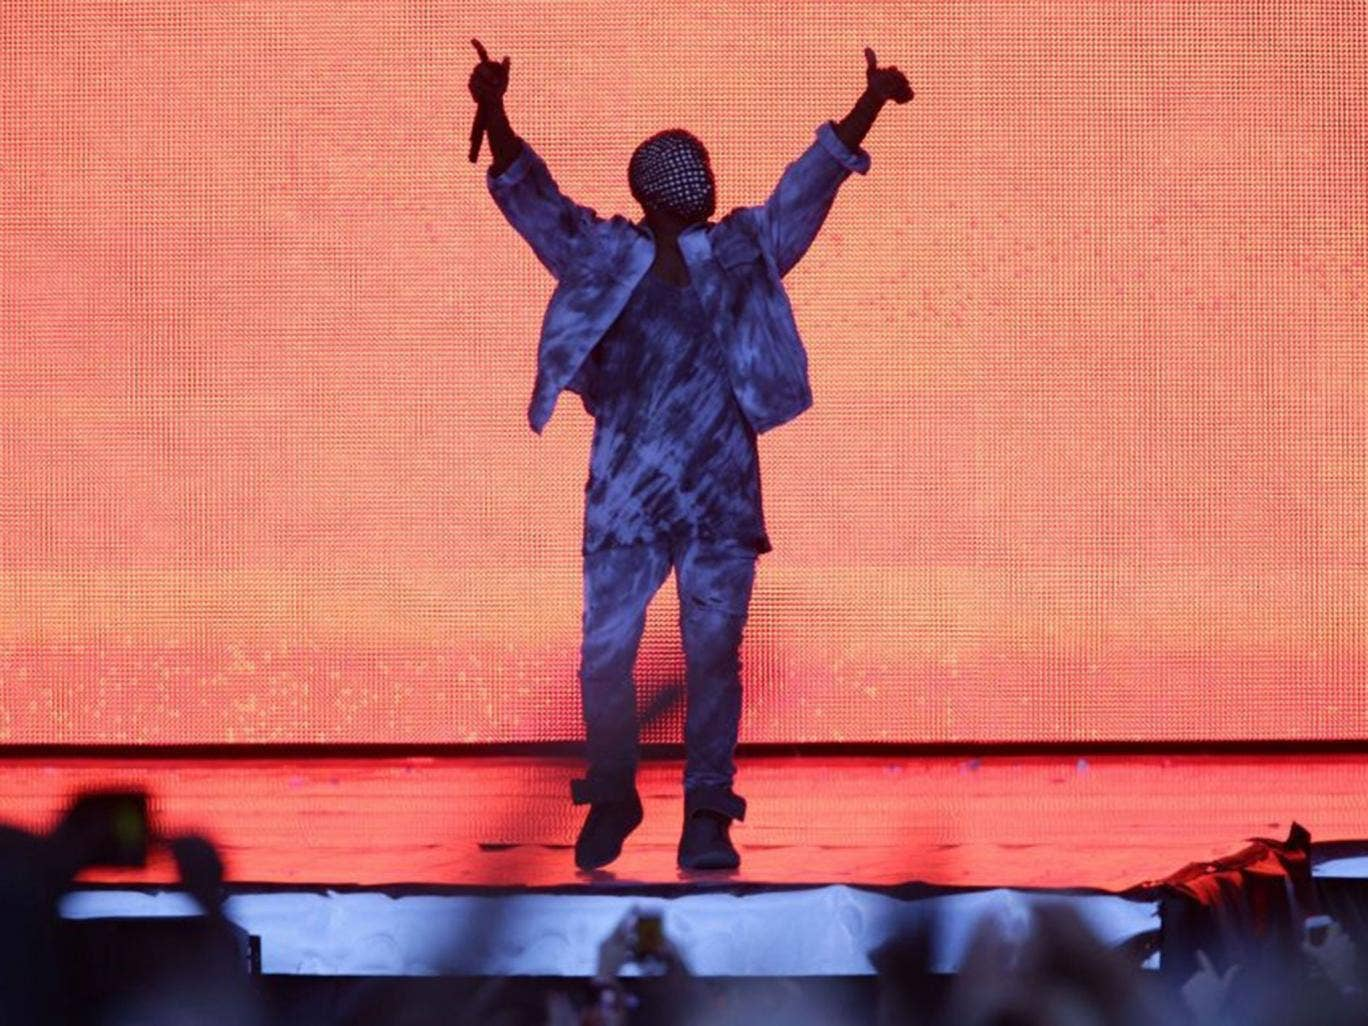 Kanye West performed in a chain mail mask at Wireless Festival in Finsbury Park